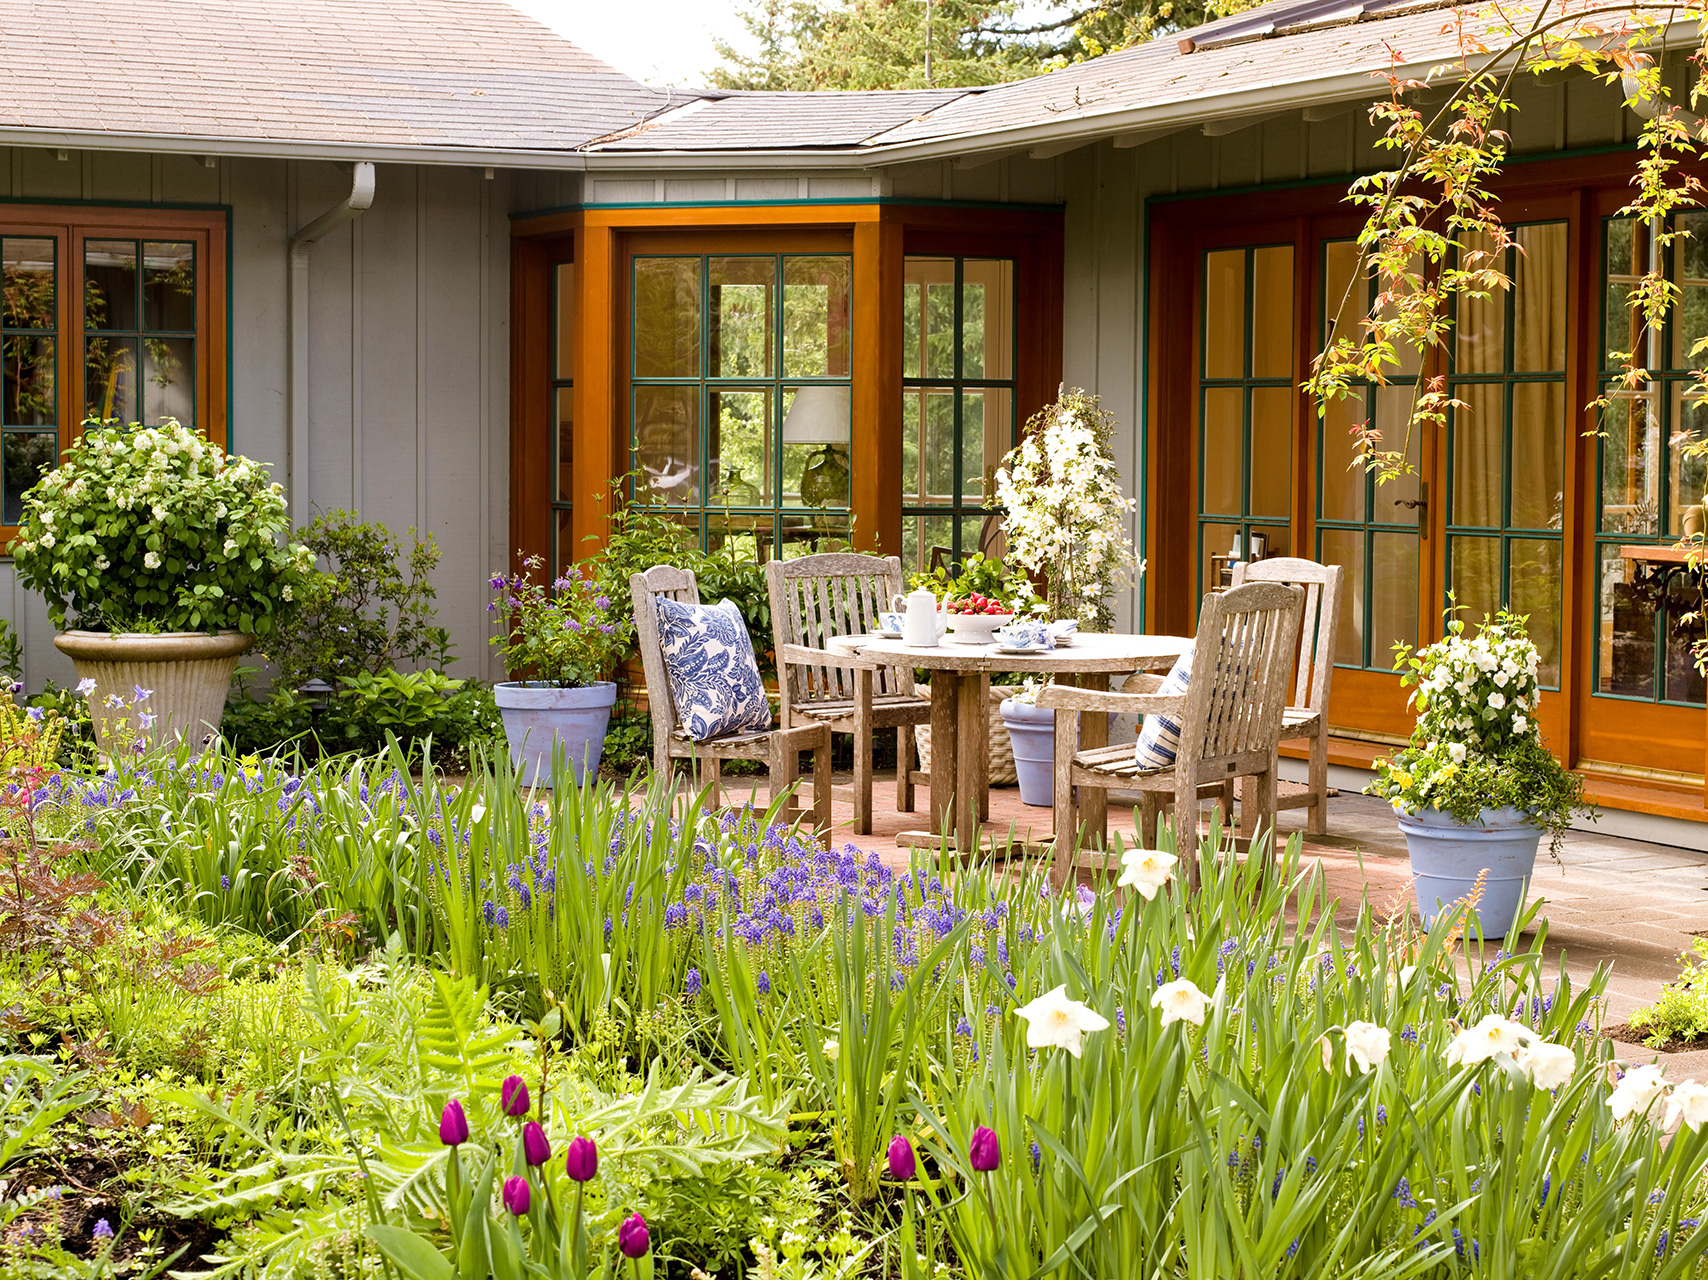 7 Landscaping Ideas For Beginners Better Homes Gardens in How To Landscape Your Backyard